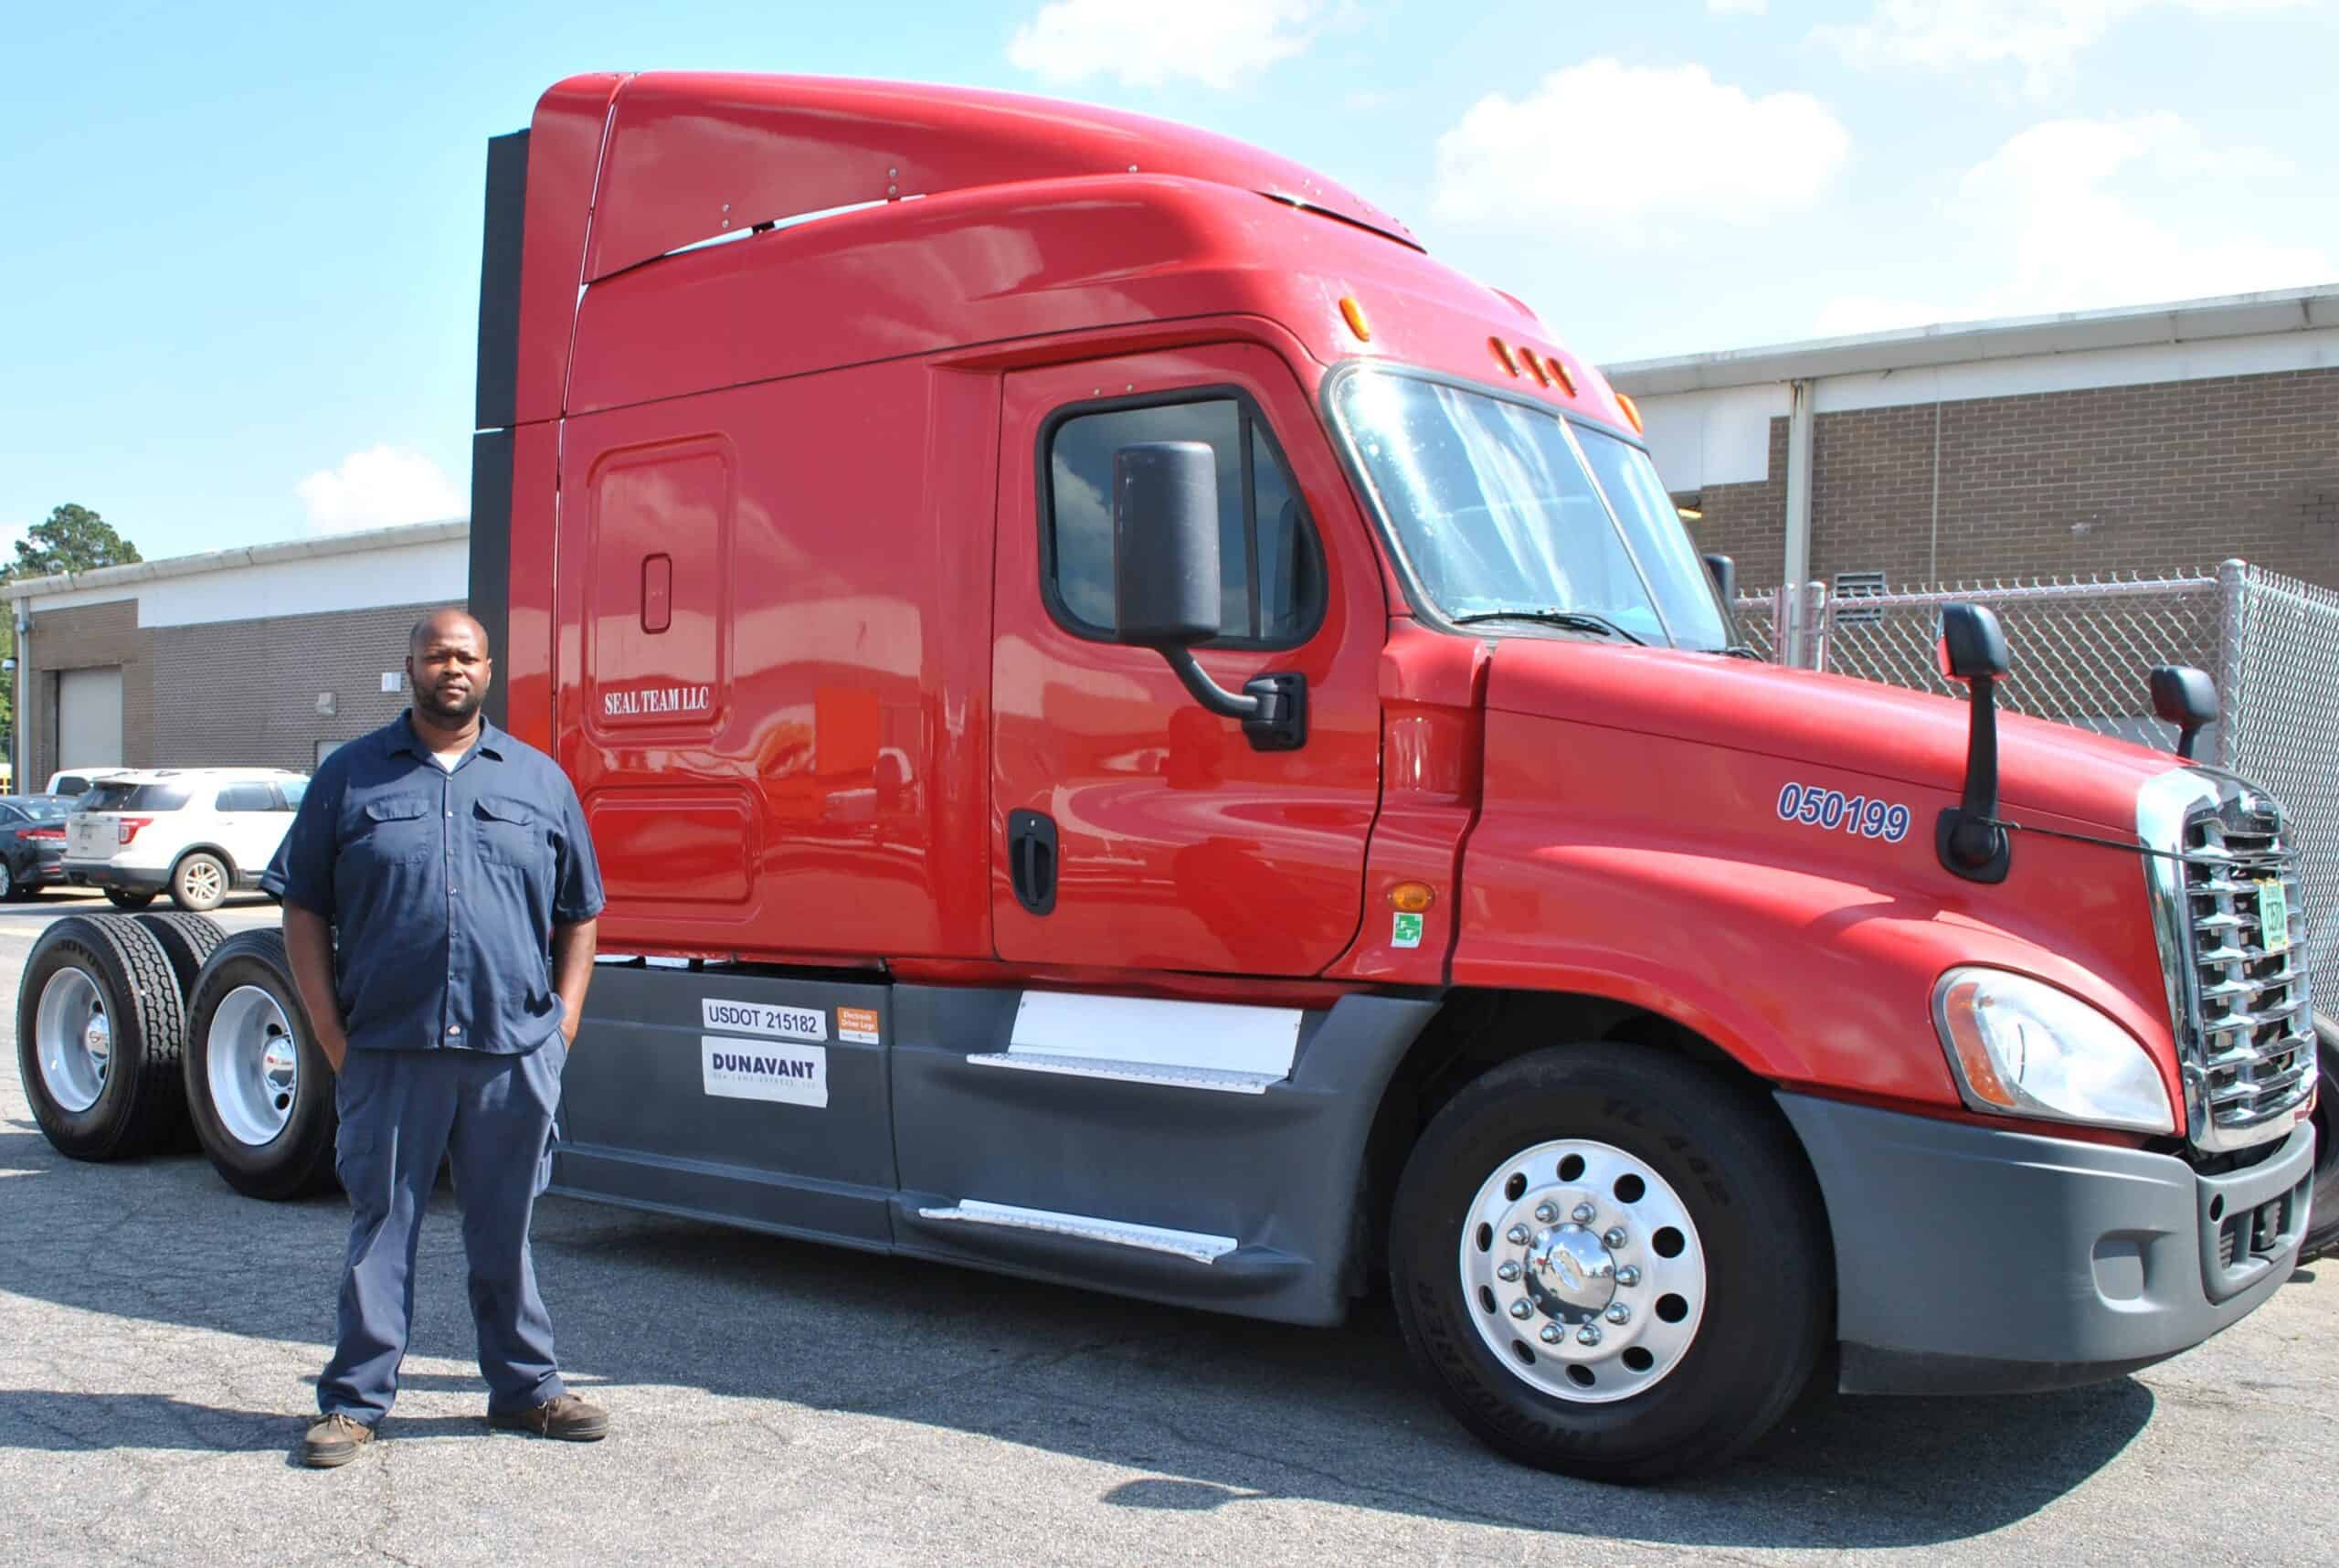 Walter Butts came to OFTC to learn how to drive trucks. Years later, he's a successful business owner back at OFTC learning the skills he needs to maintain and grow his business.